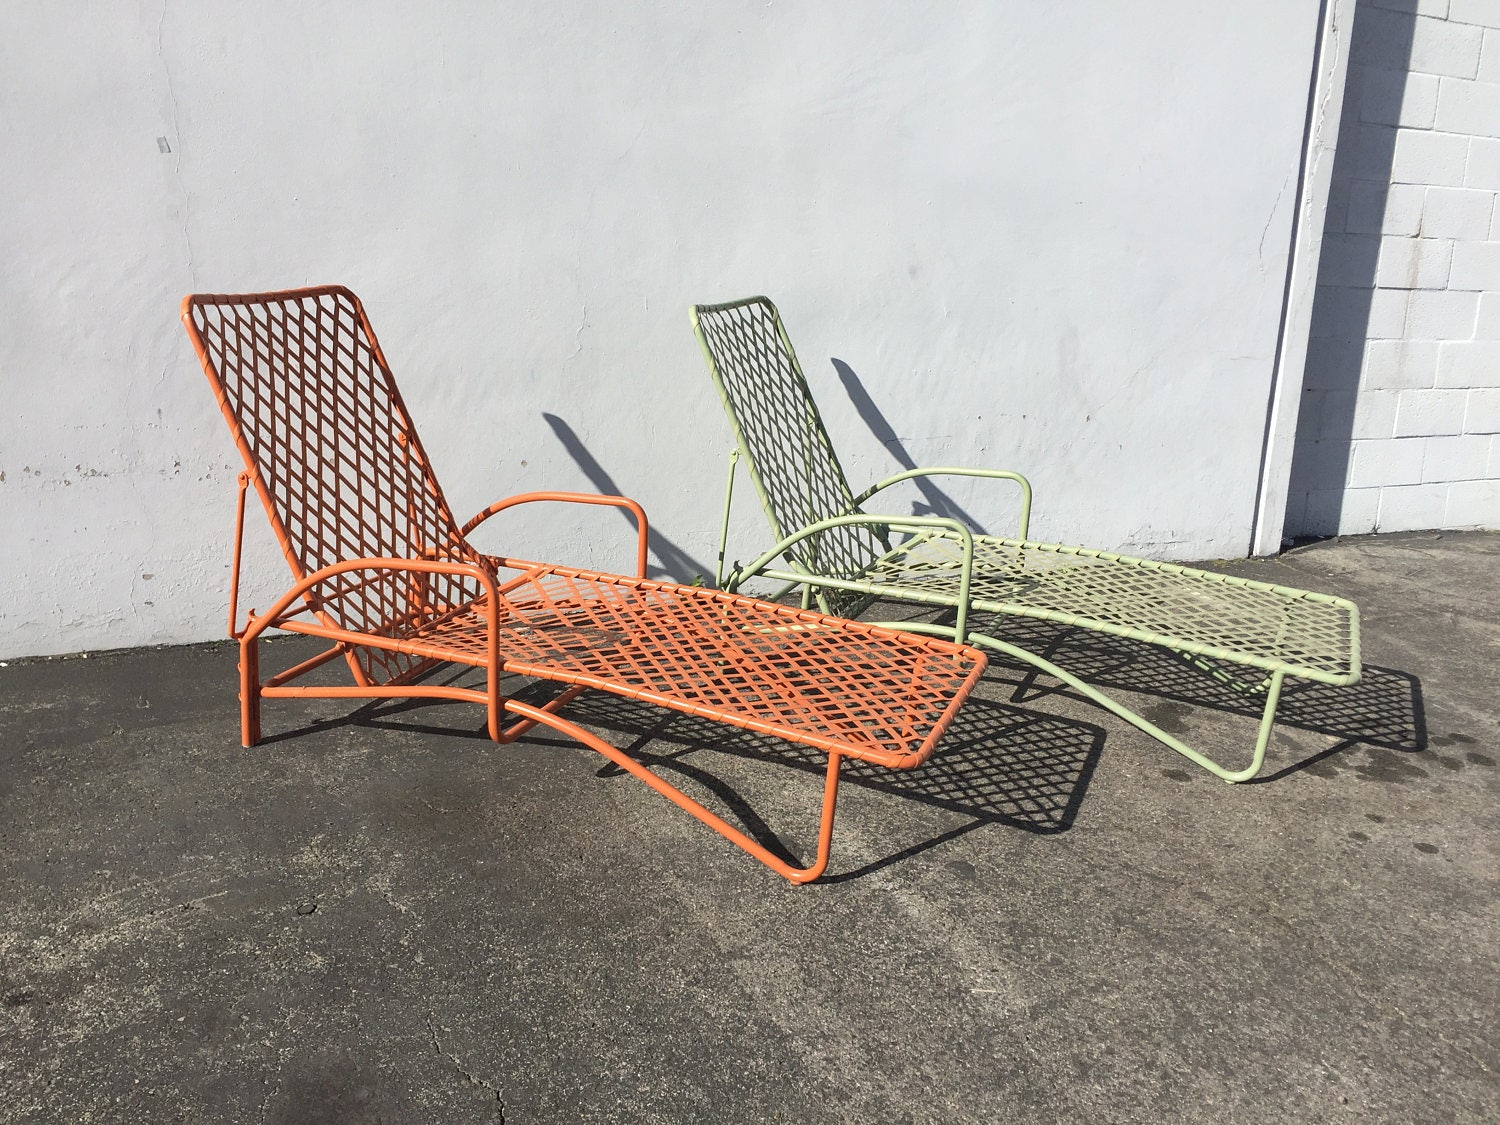 vintage mid century modern patio furniture. Brown Jordan Tamiami Adjustable Chaise Lounge Pool Patio Chair Mid Century Modern Outdoor Furniture Vintage Vinyl Lace Strap Midcentury With D